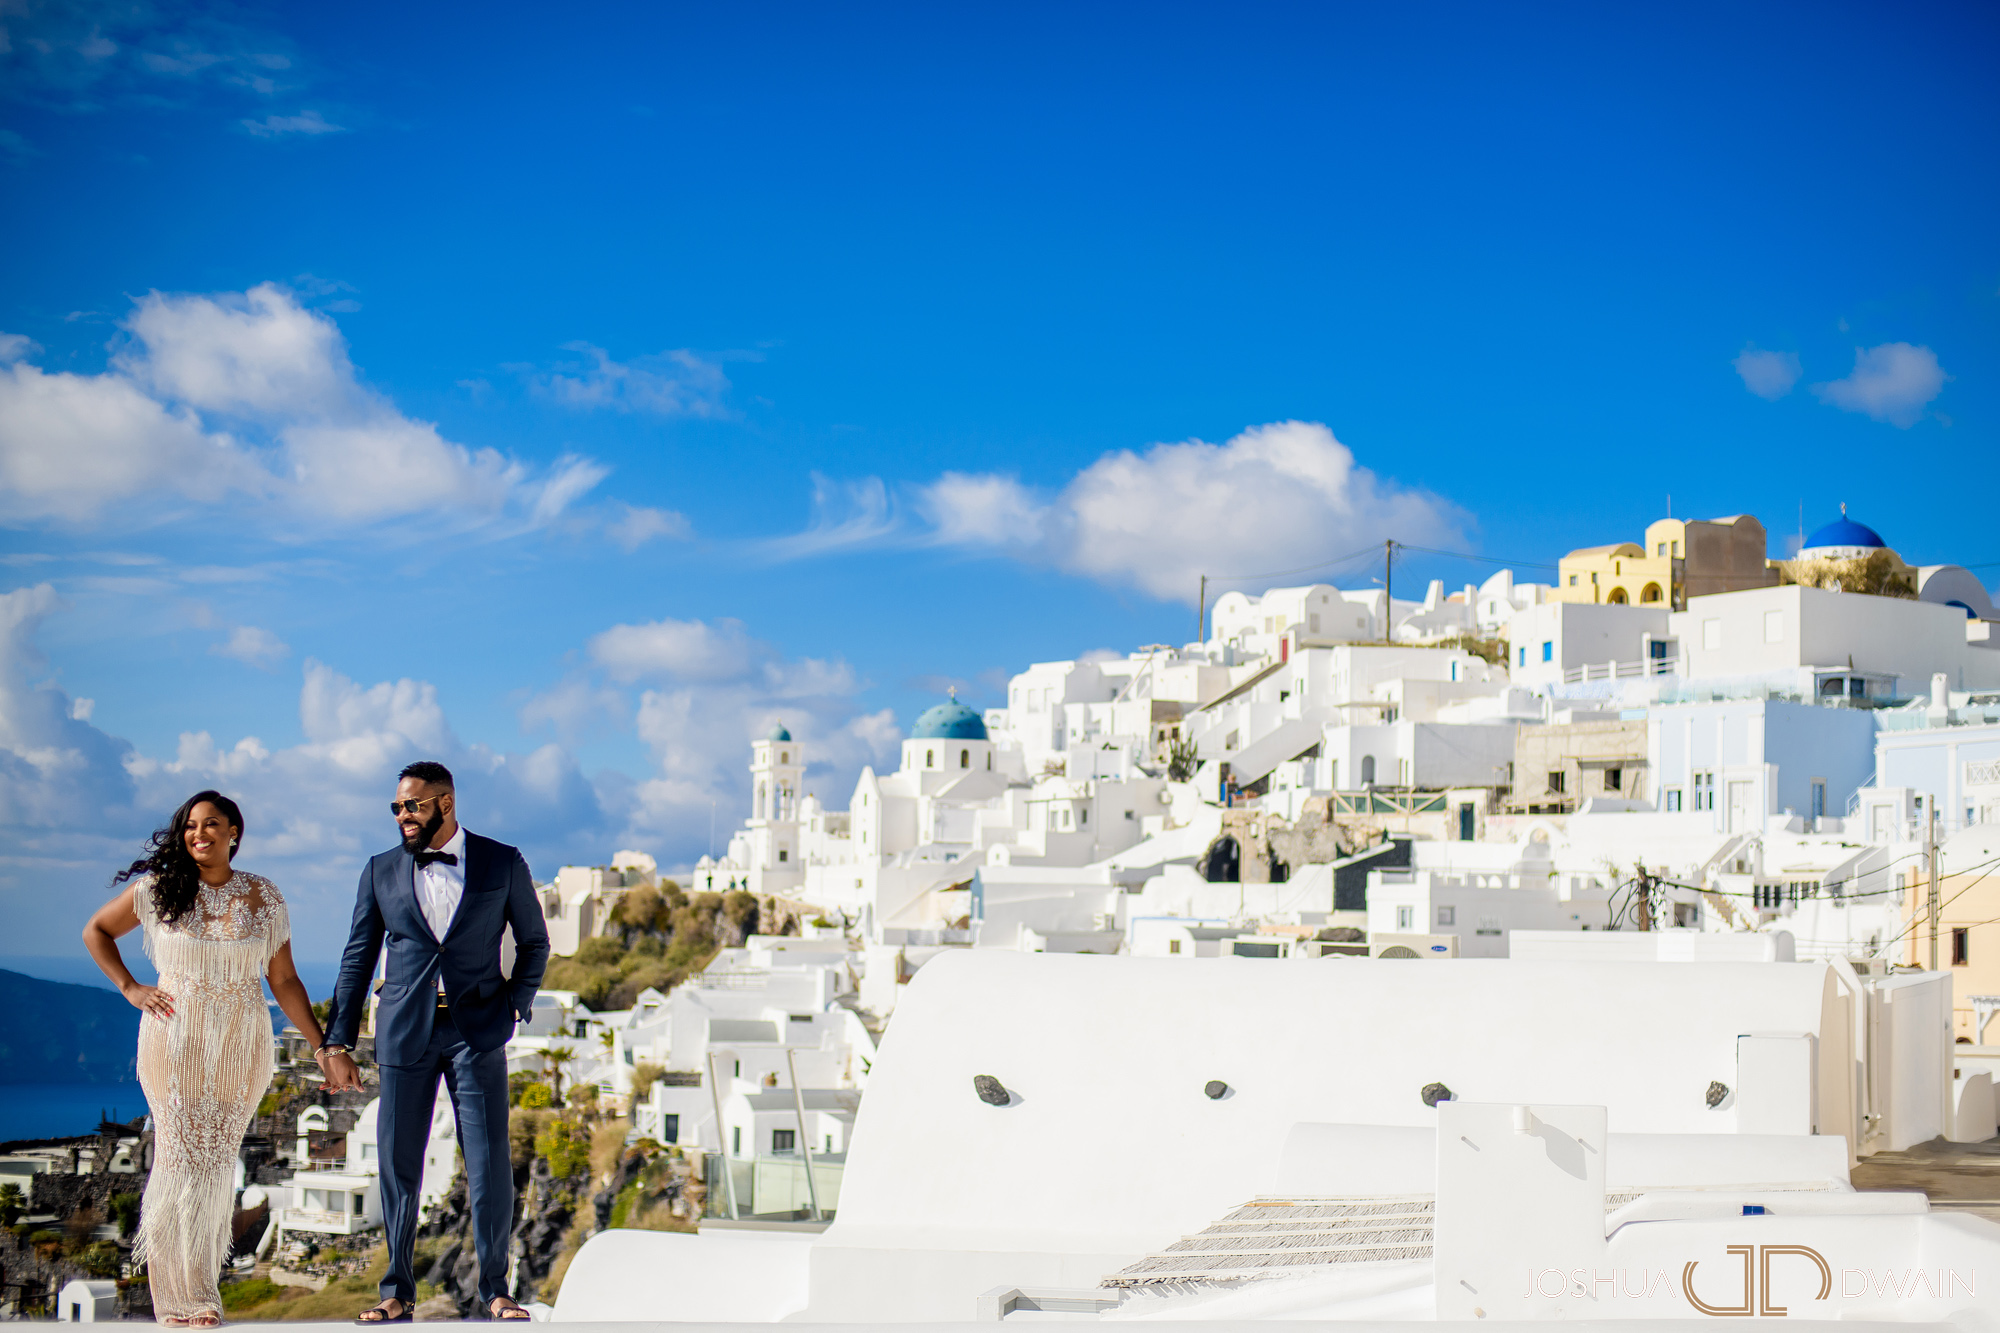 ekene-issac-07-santorini-oia-thira-greece-wedding-engagement-photos-african-american-destination-photographer-joshua-dwain